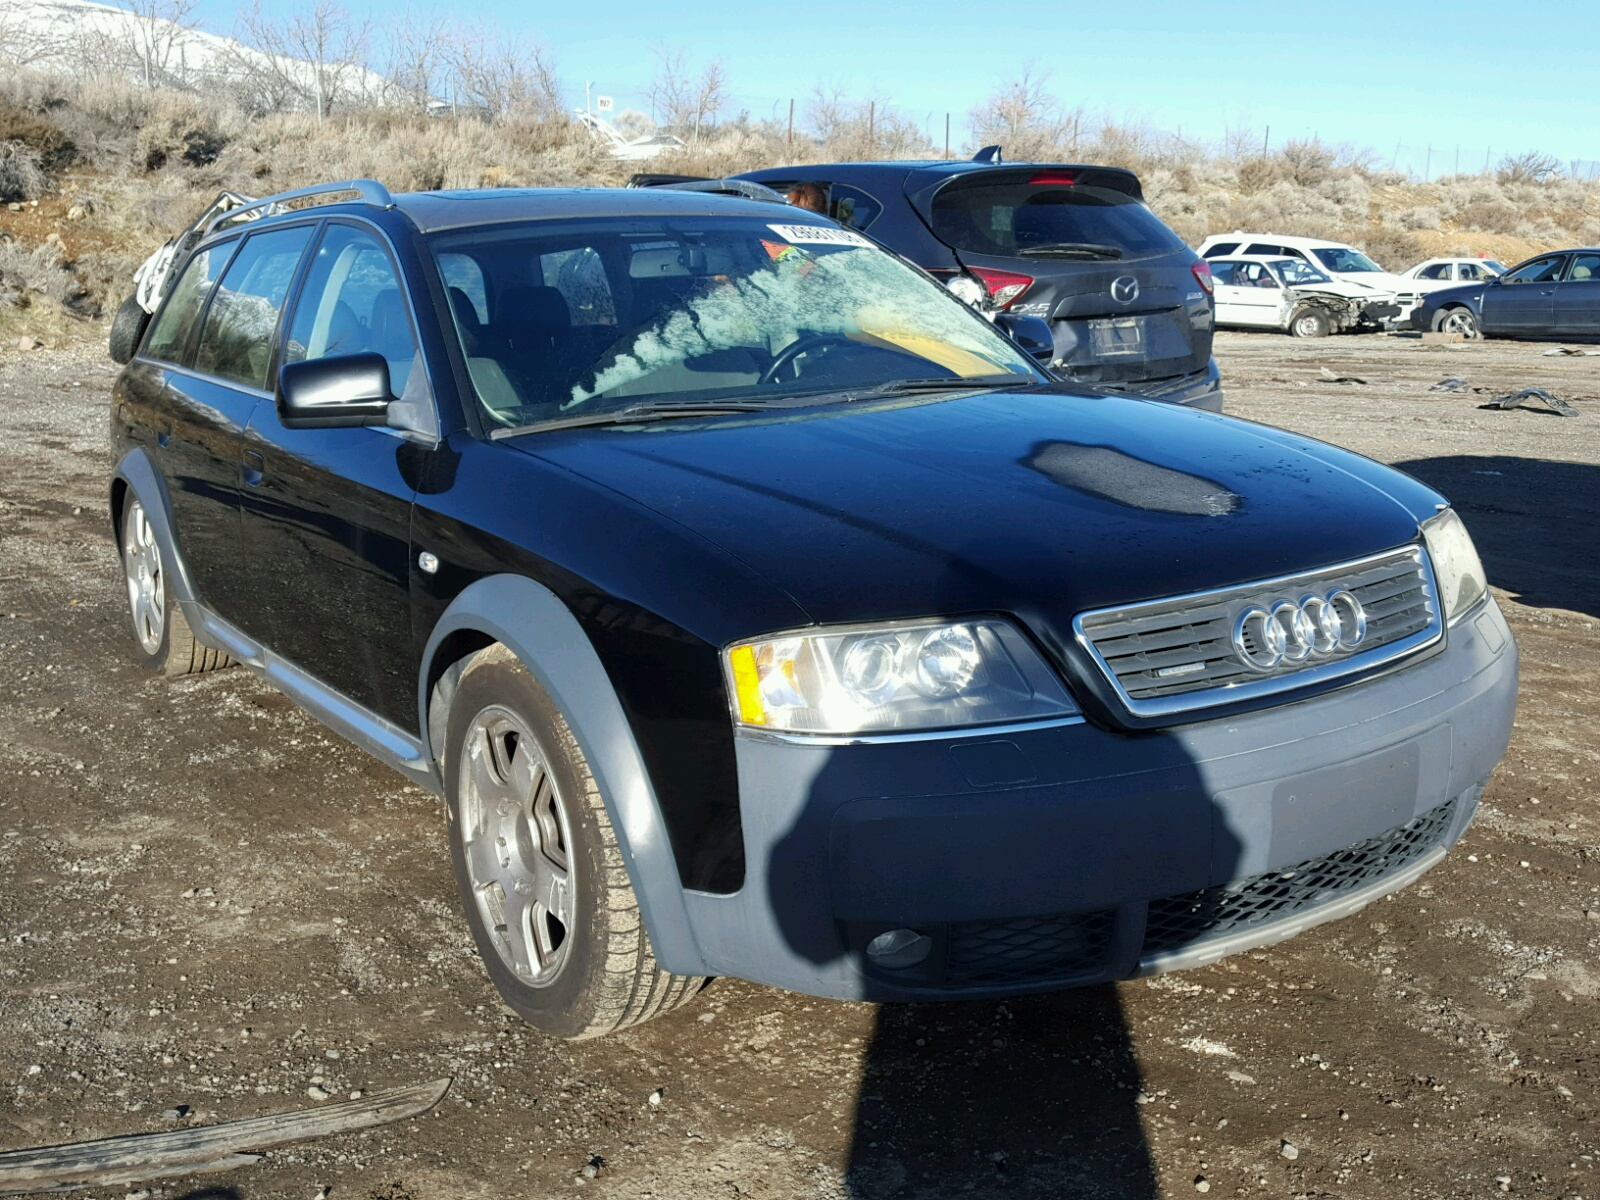 WAYDBN BLACK AUDI ALLROAD On Sale In NV RENO - Reno audi